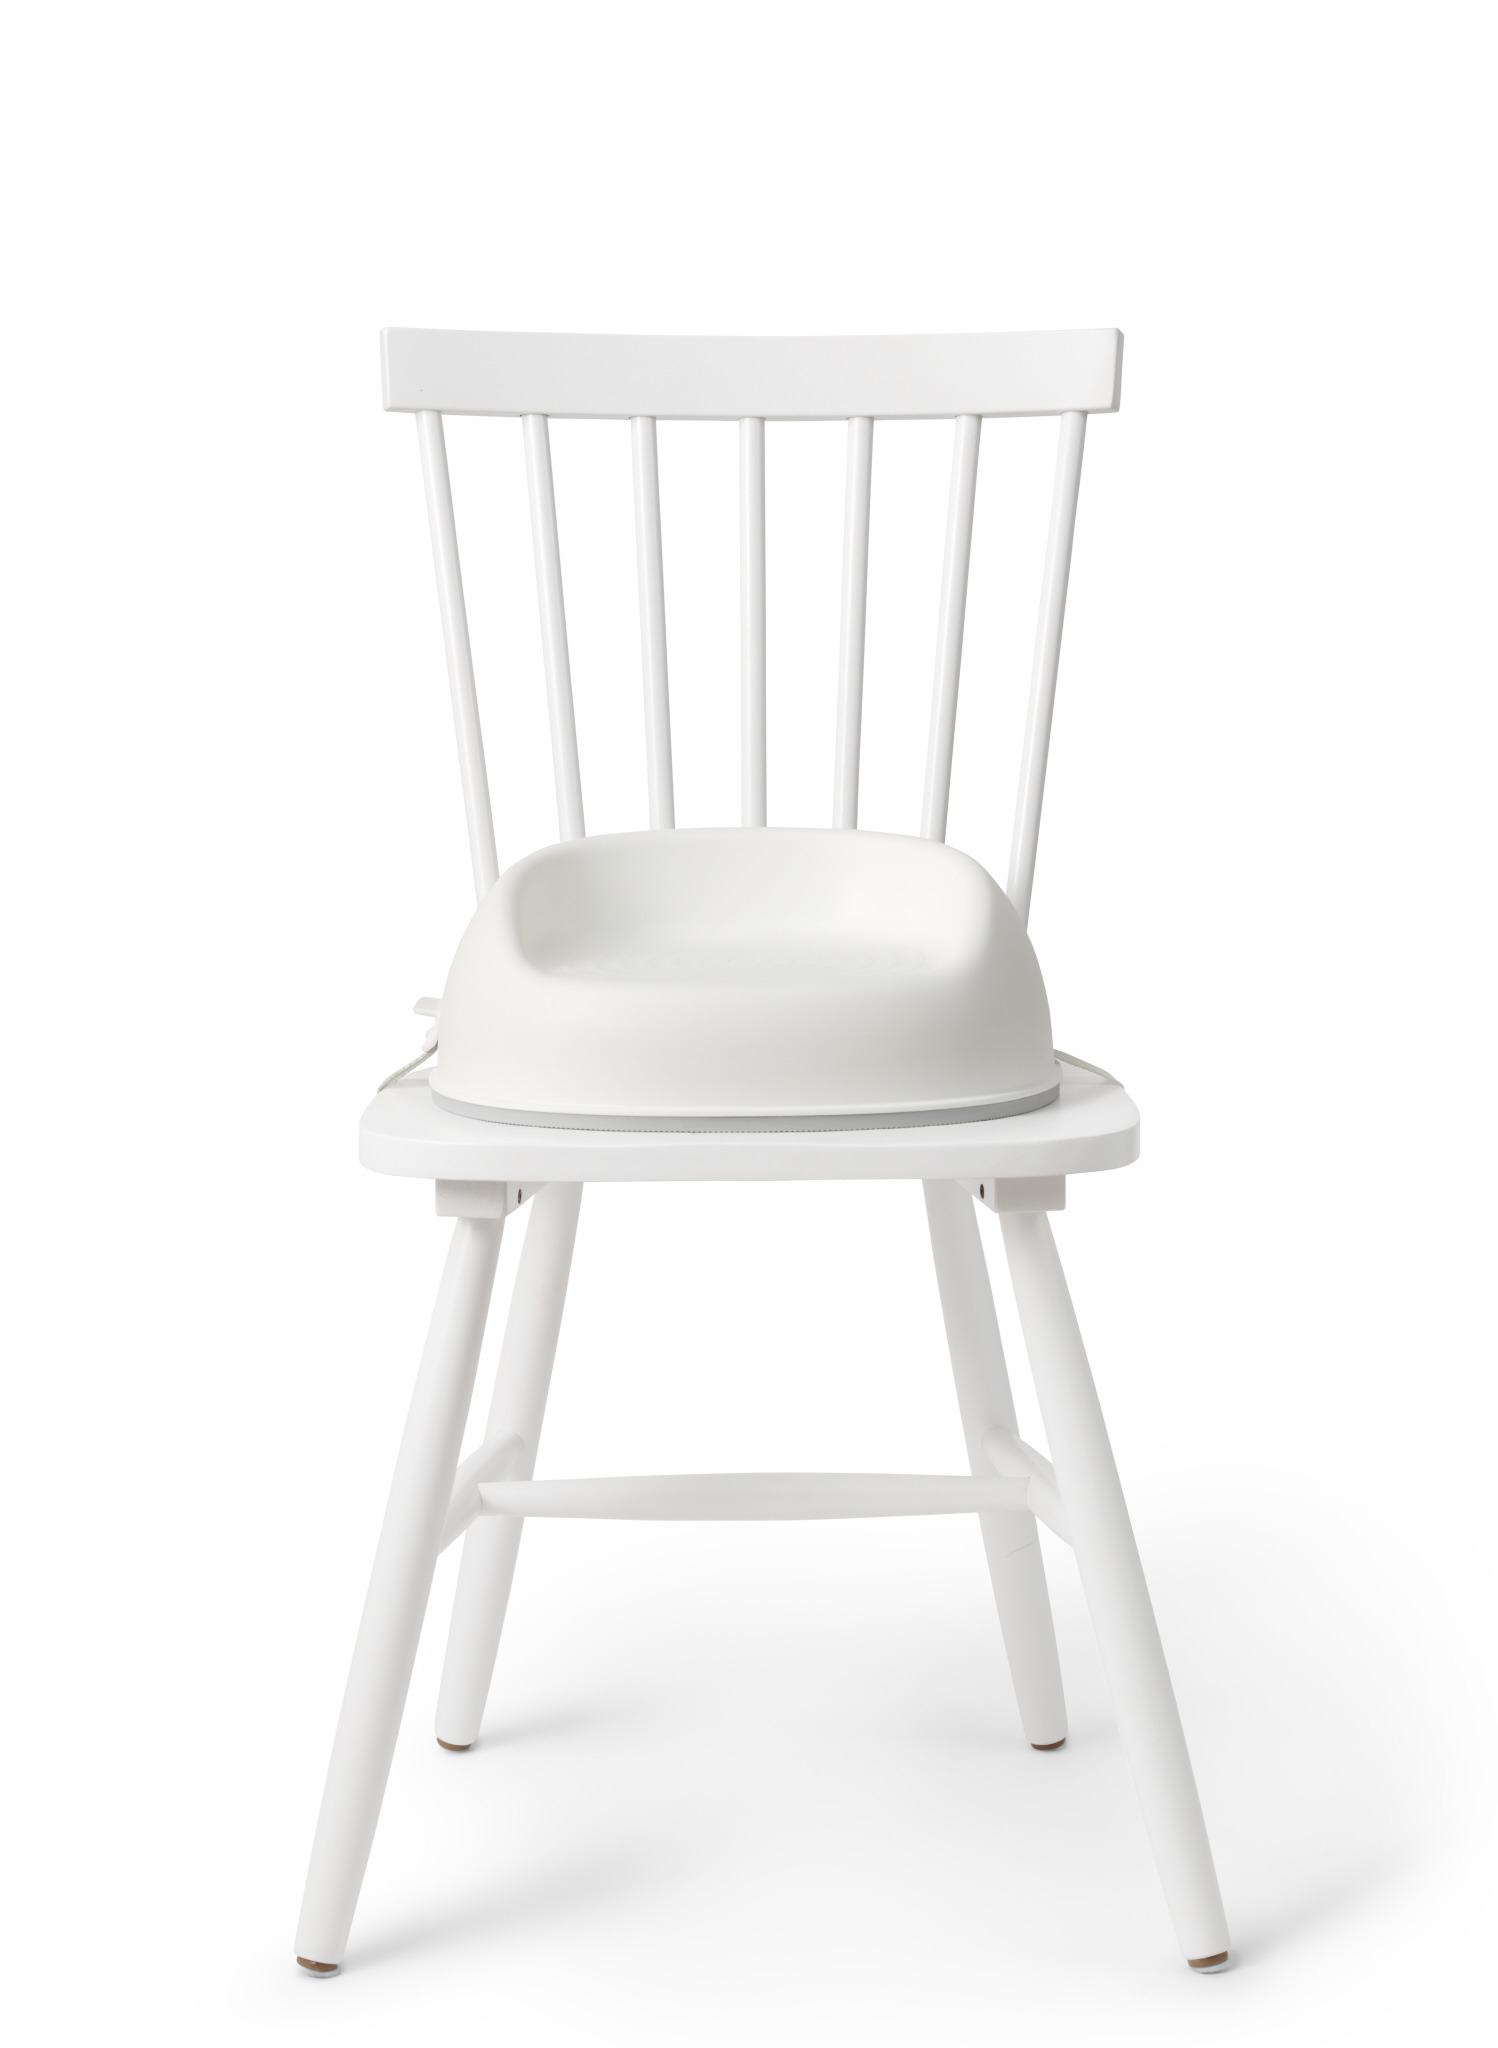 baby bjorn booster chair hunting chairs and stools babybjÖrn seat white scandinavian